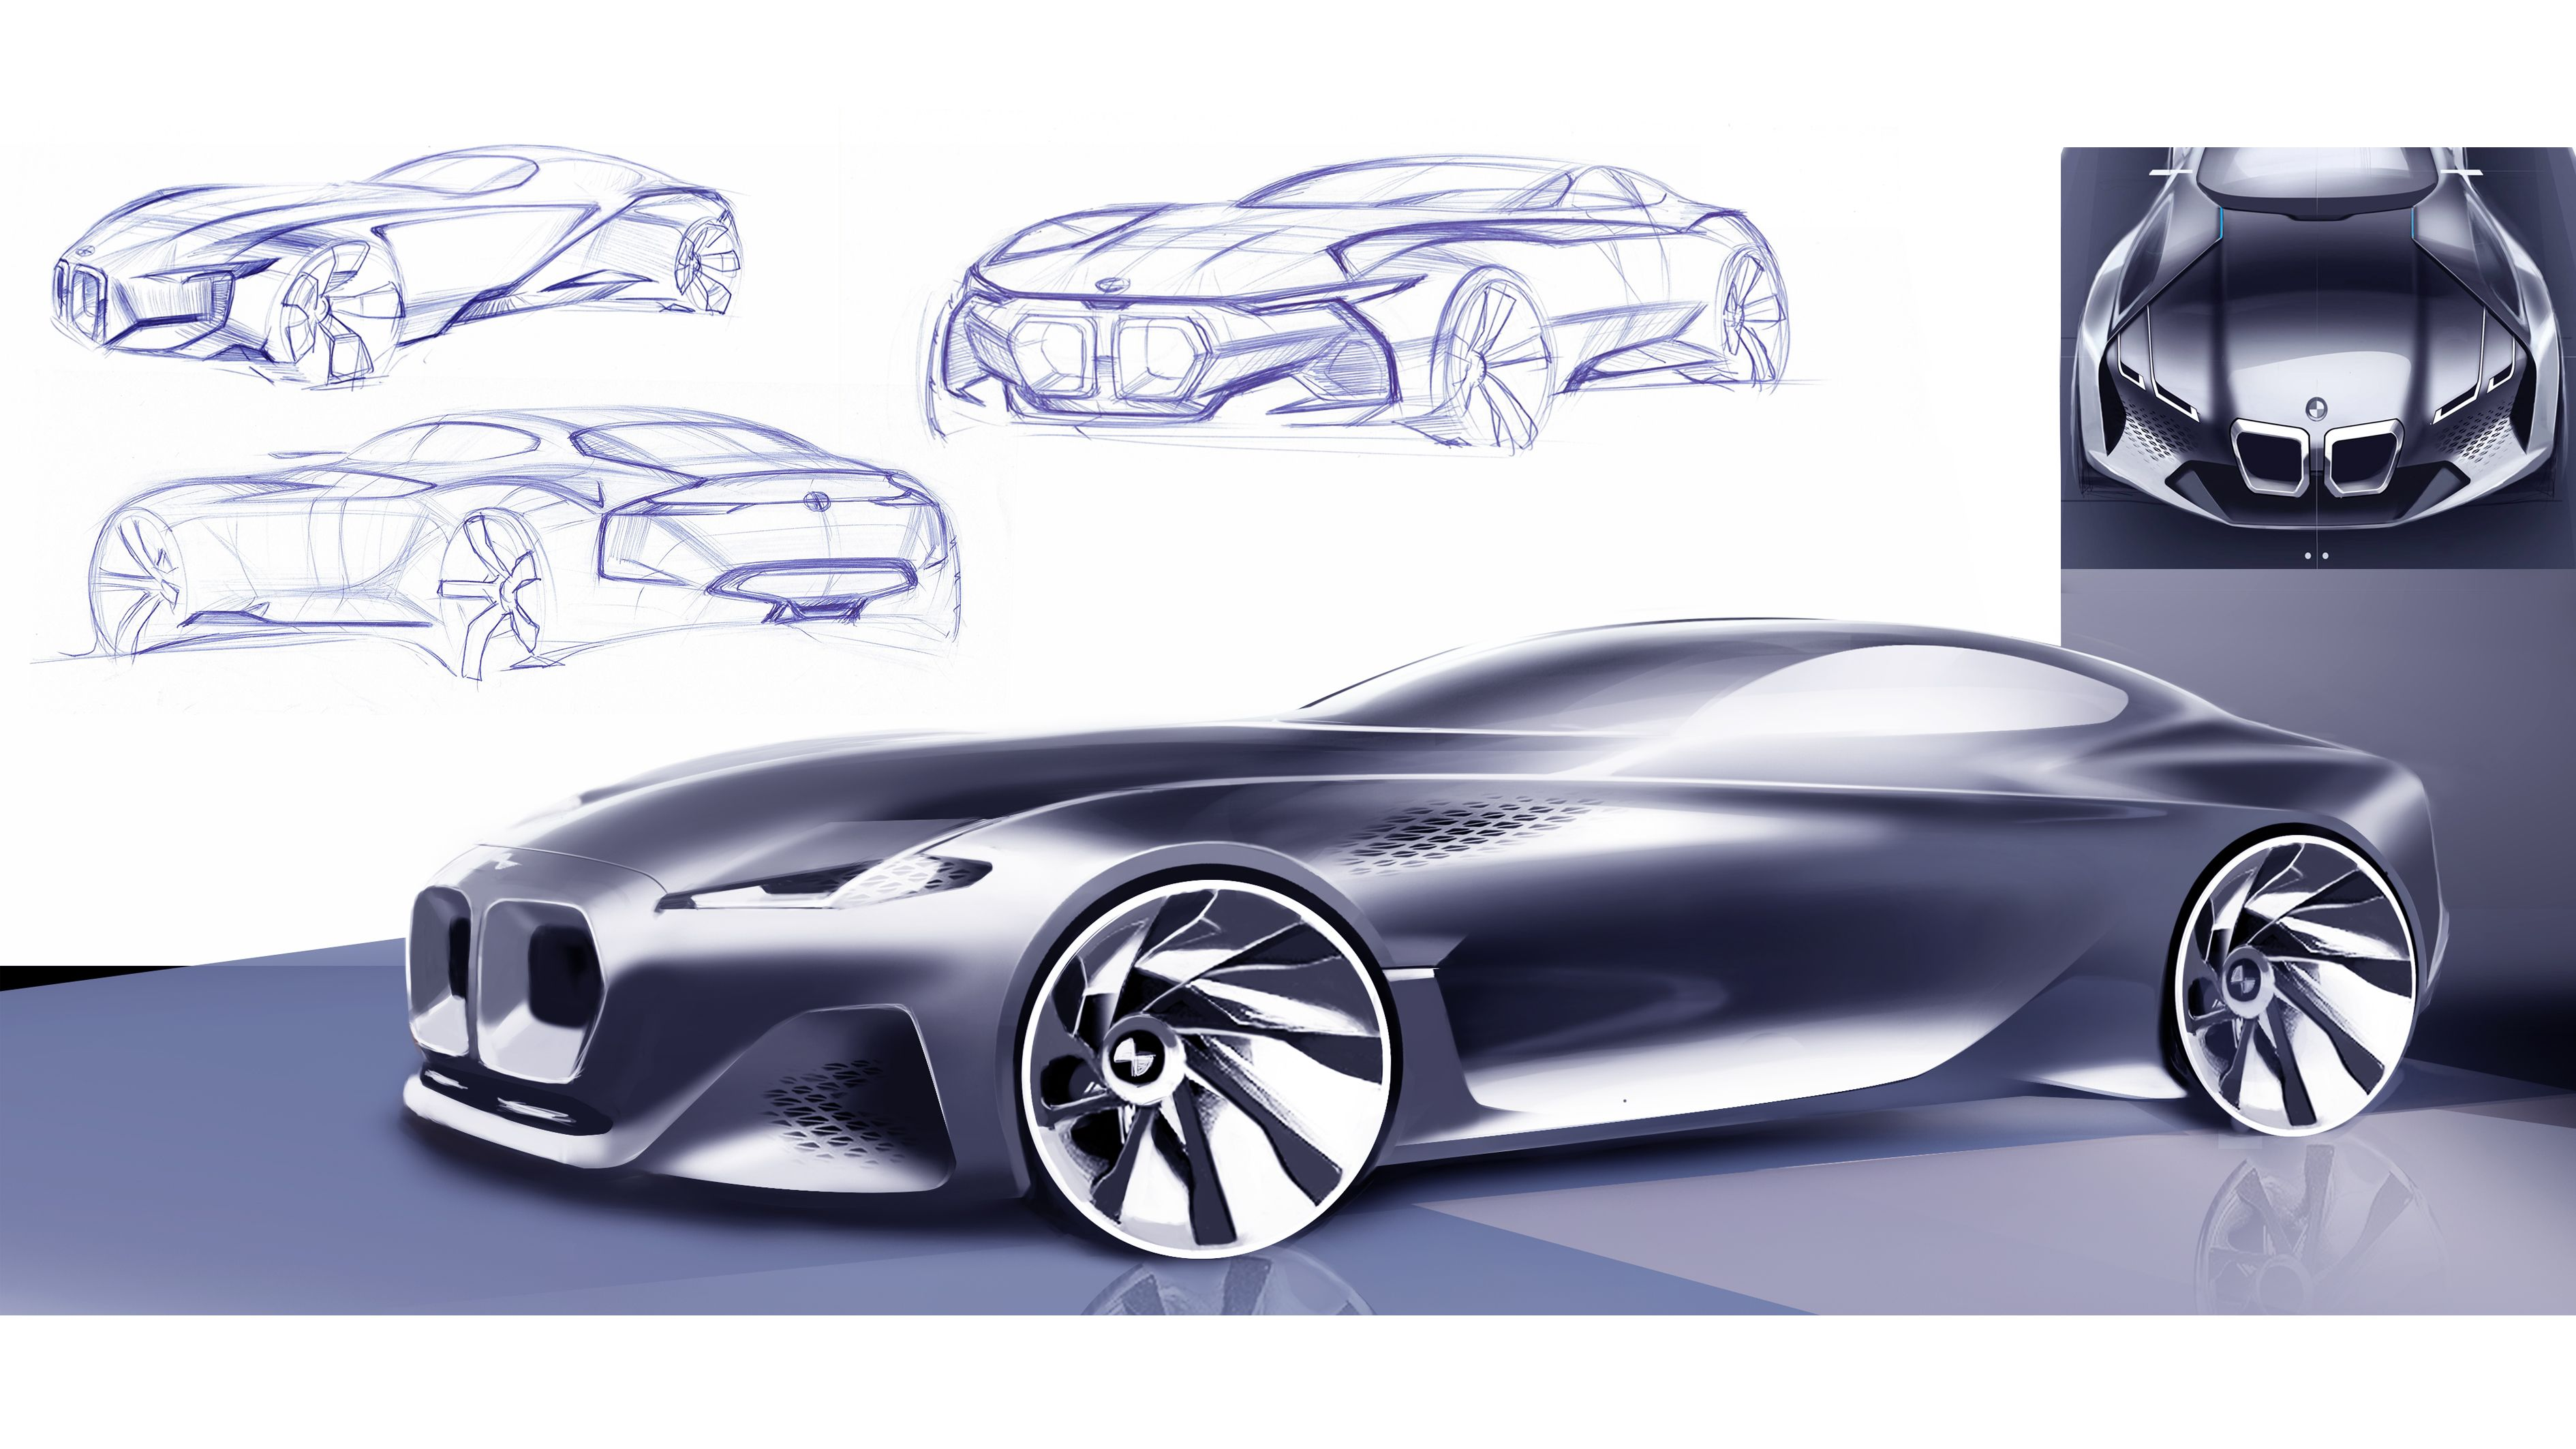 Pin By 修一 On Pencil Sketch Pinterest Concept Bmw And Cars